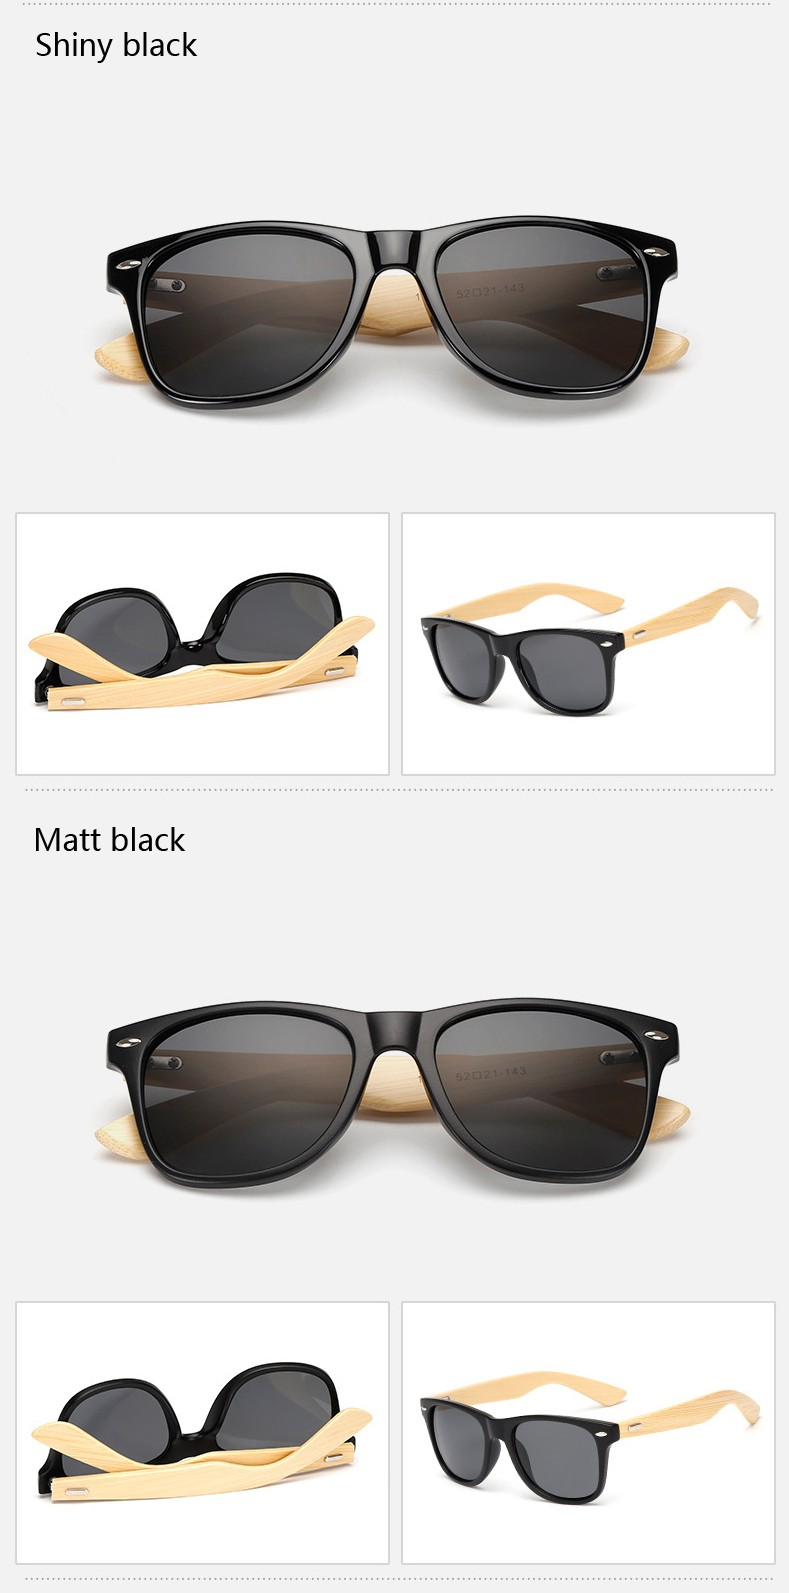 82ed2f2f8ee8 Retro Bamboo Wooden Sunglasses Men Designer Sport Sunglasses Brand  Sunglasses Protective Sunglasses Gold Mirror Sunglasses Bezel Glasses